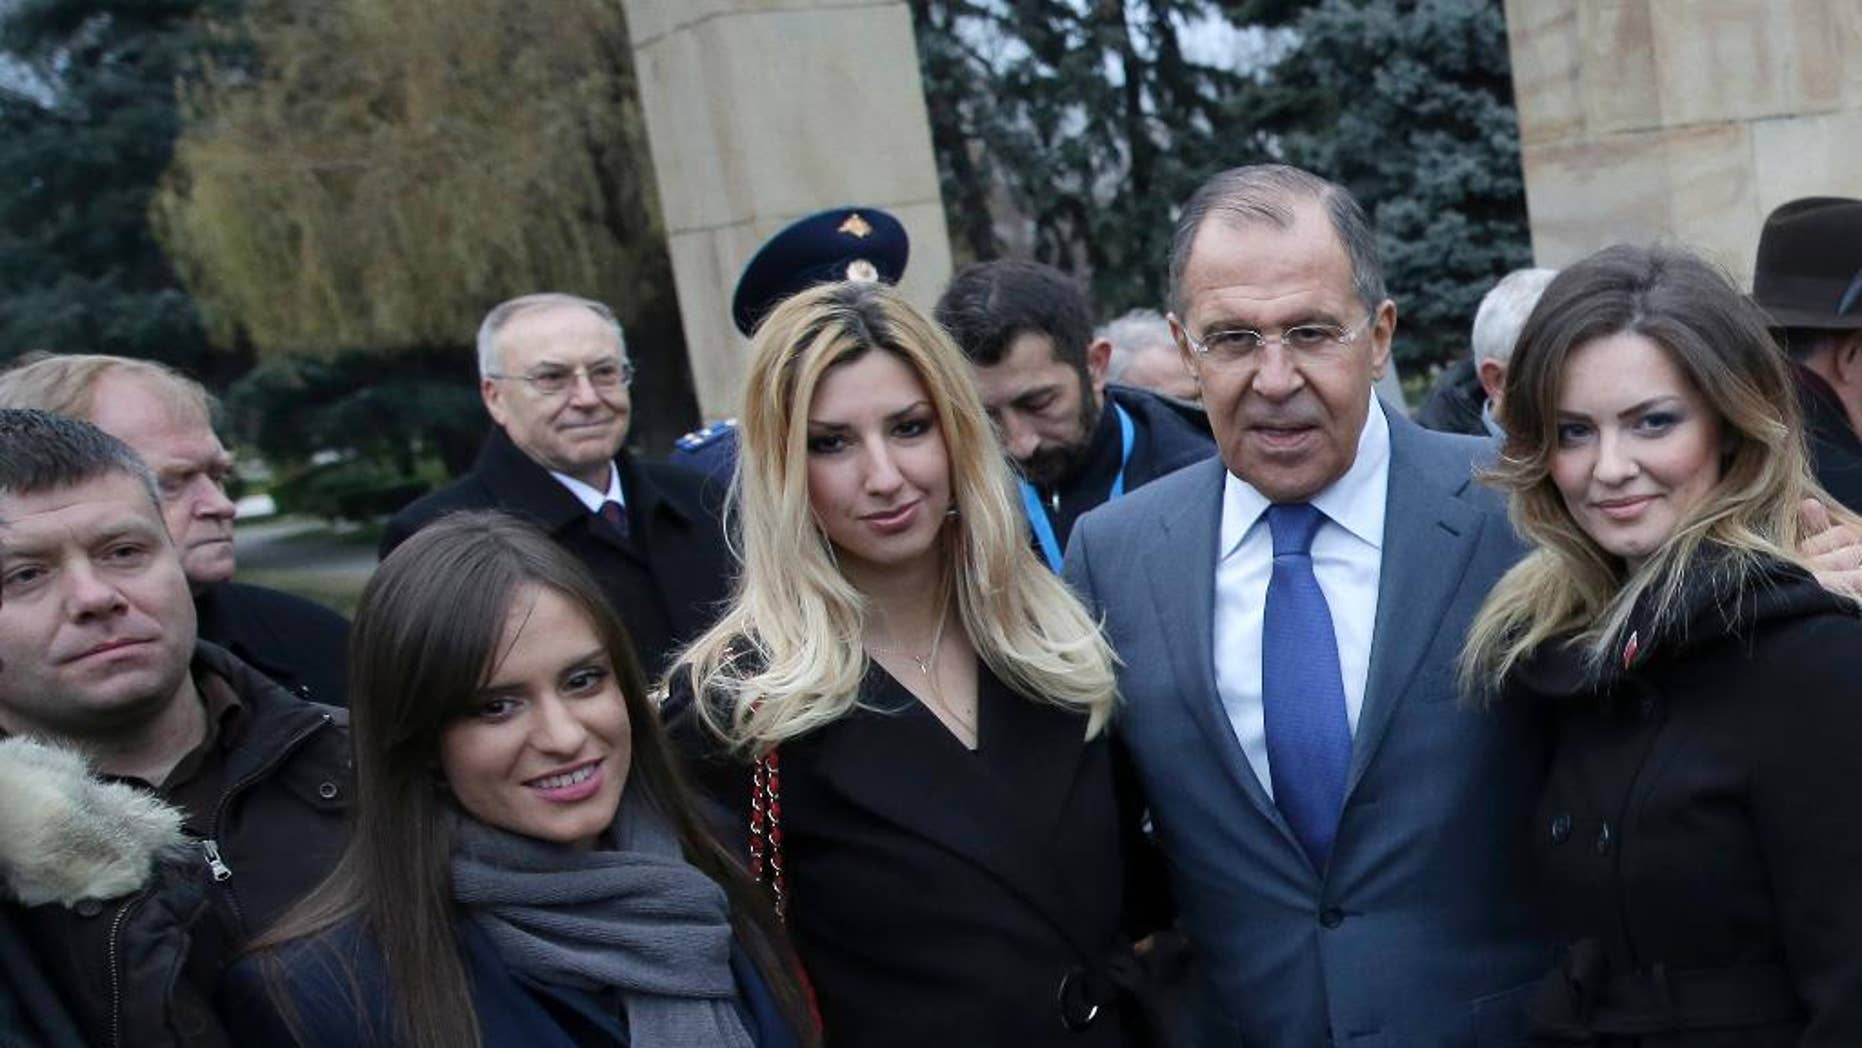 FILE - In this Monday Dec. 12, 2016 file photo, Russian Foreign Minister Sergey Lavrov, second right, poses for photos with members of a far-right pro-Russian group of which Nemanja Ristic, first left, is a member. A Serbian court on Thursday Feb. 9, 2017, has rejected an extradition request by Montenegro for Nemanja Ristic suspected of taking part in an alleged pro-Russian plot to overthrow the small Balkan country's government. (AP Photo, File)